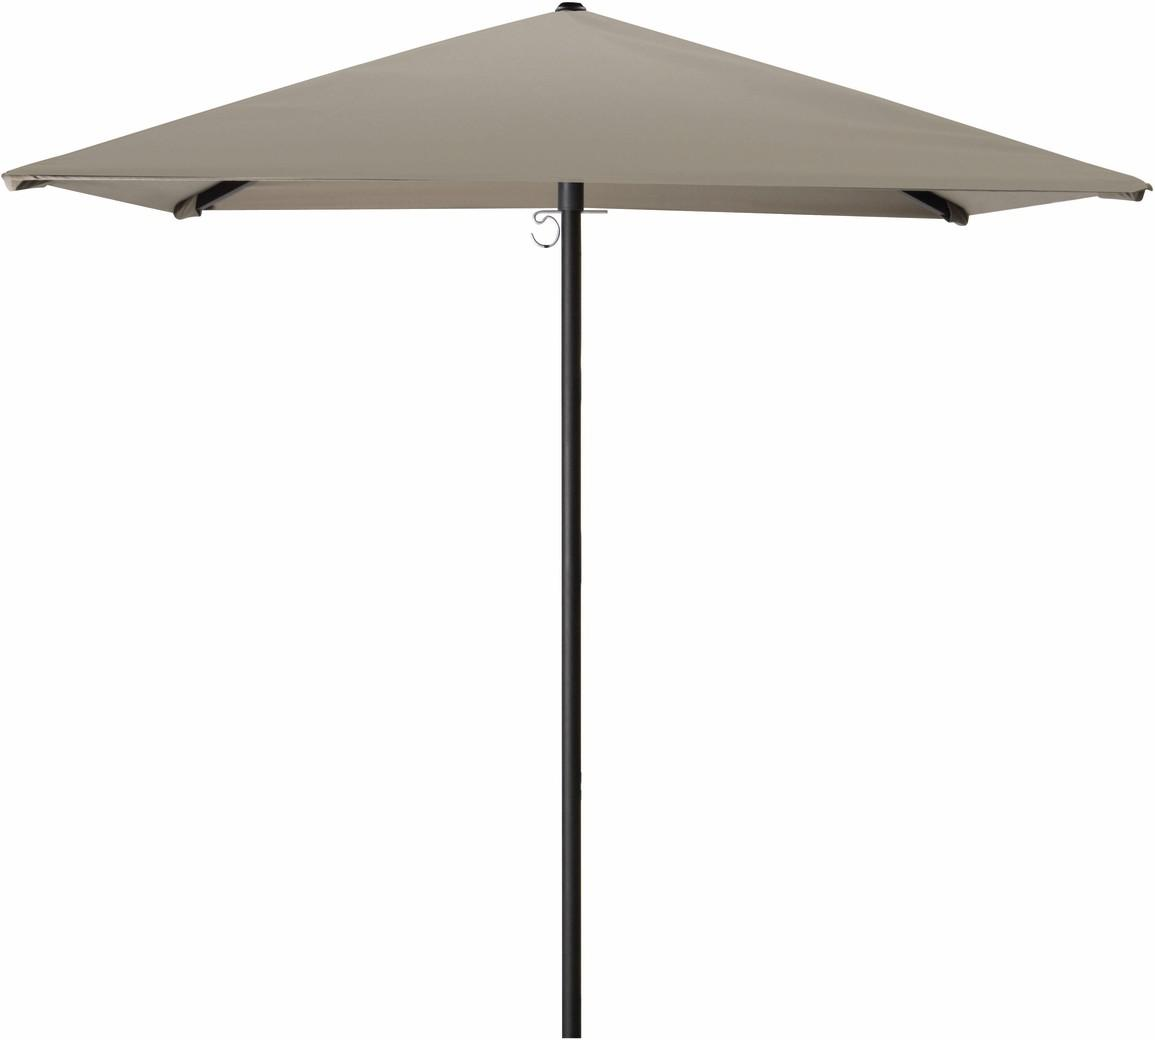 Umbrella small - central pole black - 180x180 AW taupe